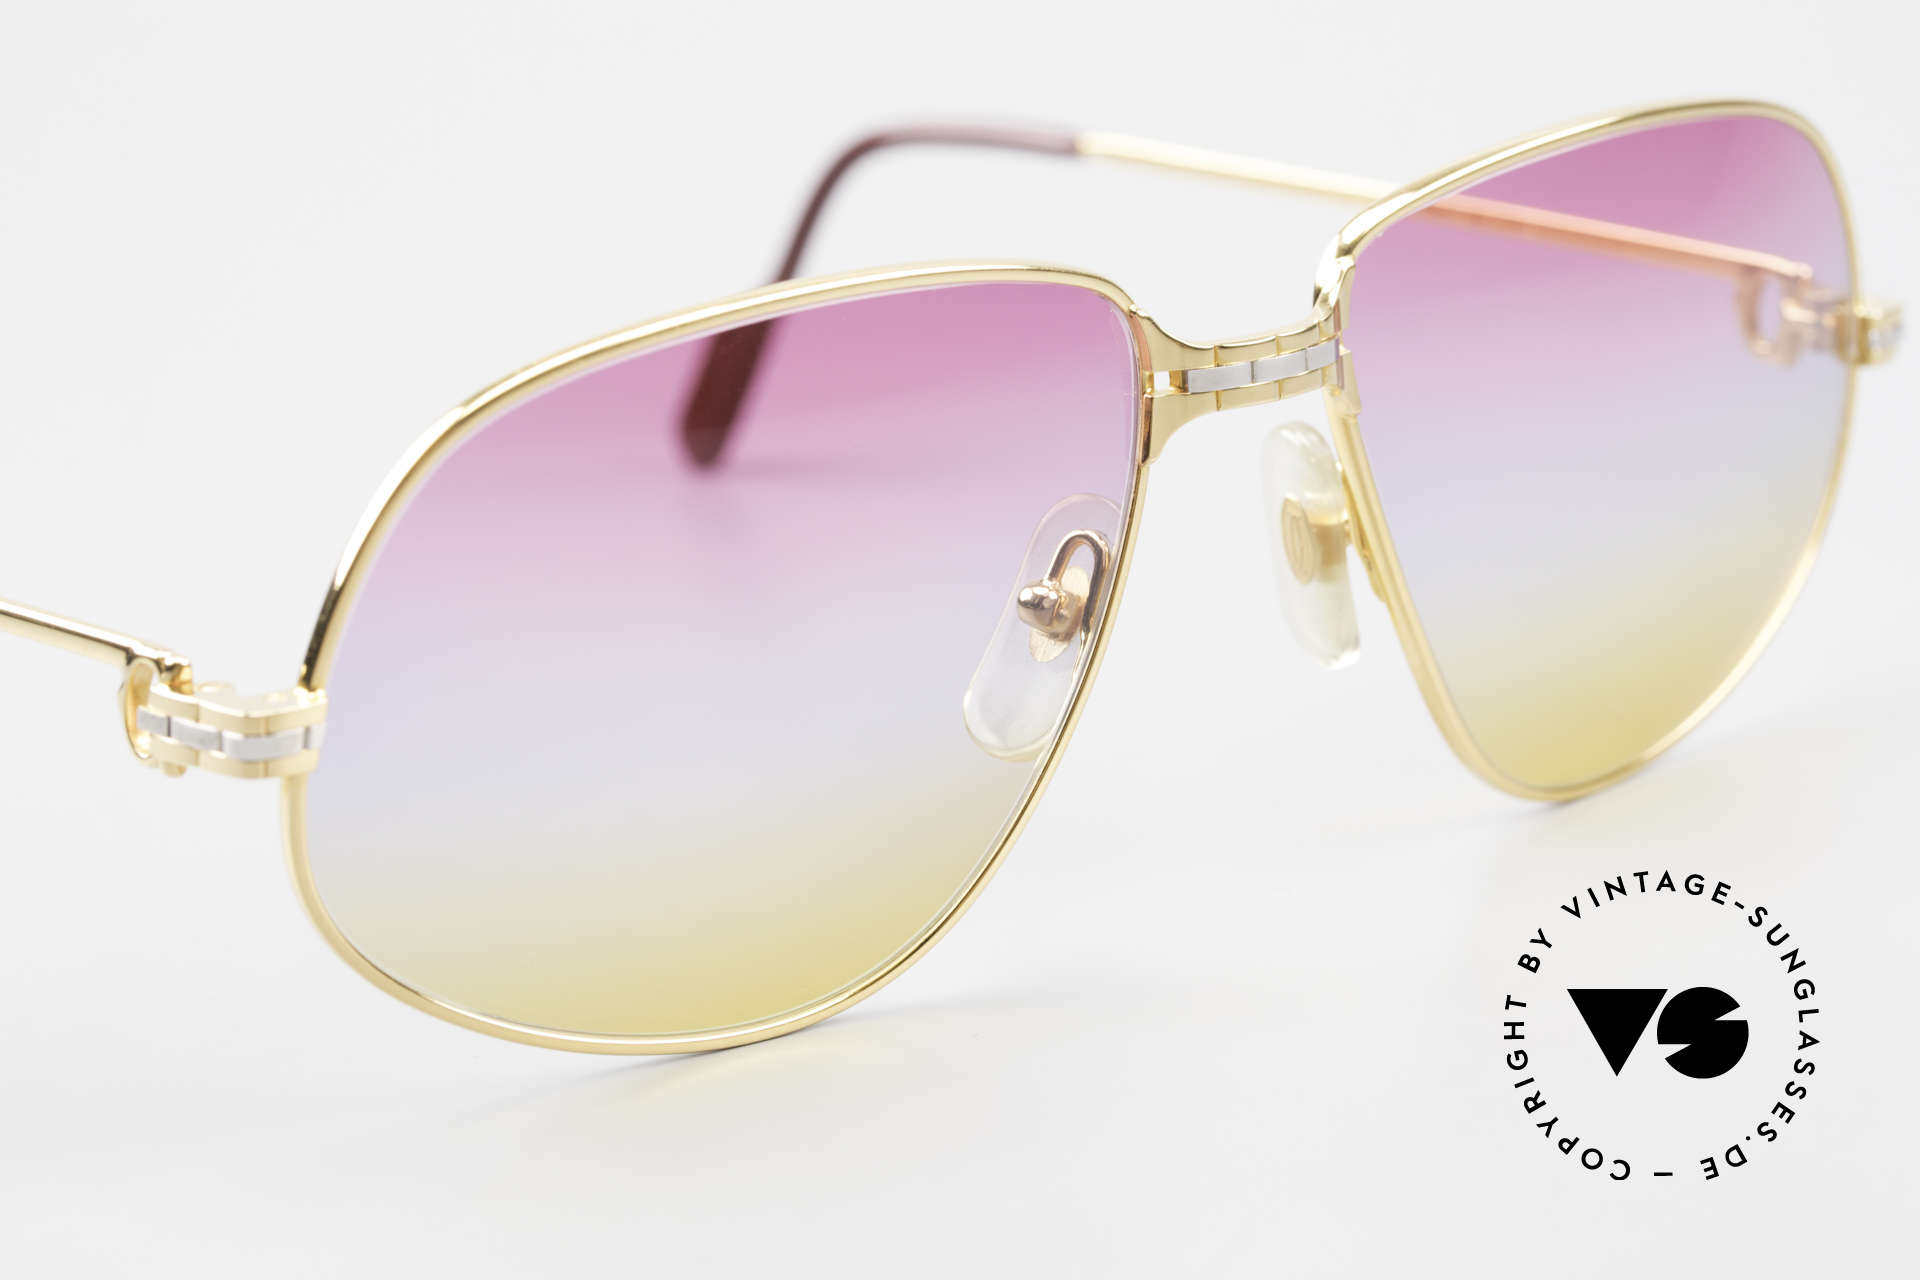 Cartier Panthere G.M. - L Sunrise Lenses & Bvlgari Case, 22ct gold-plated frame with new SUNRISE colored lenses, Made for Men and Women